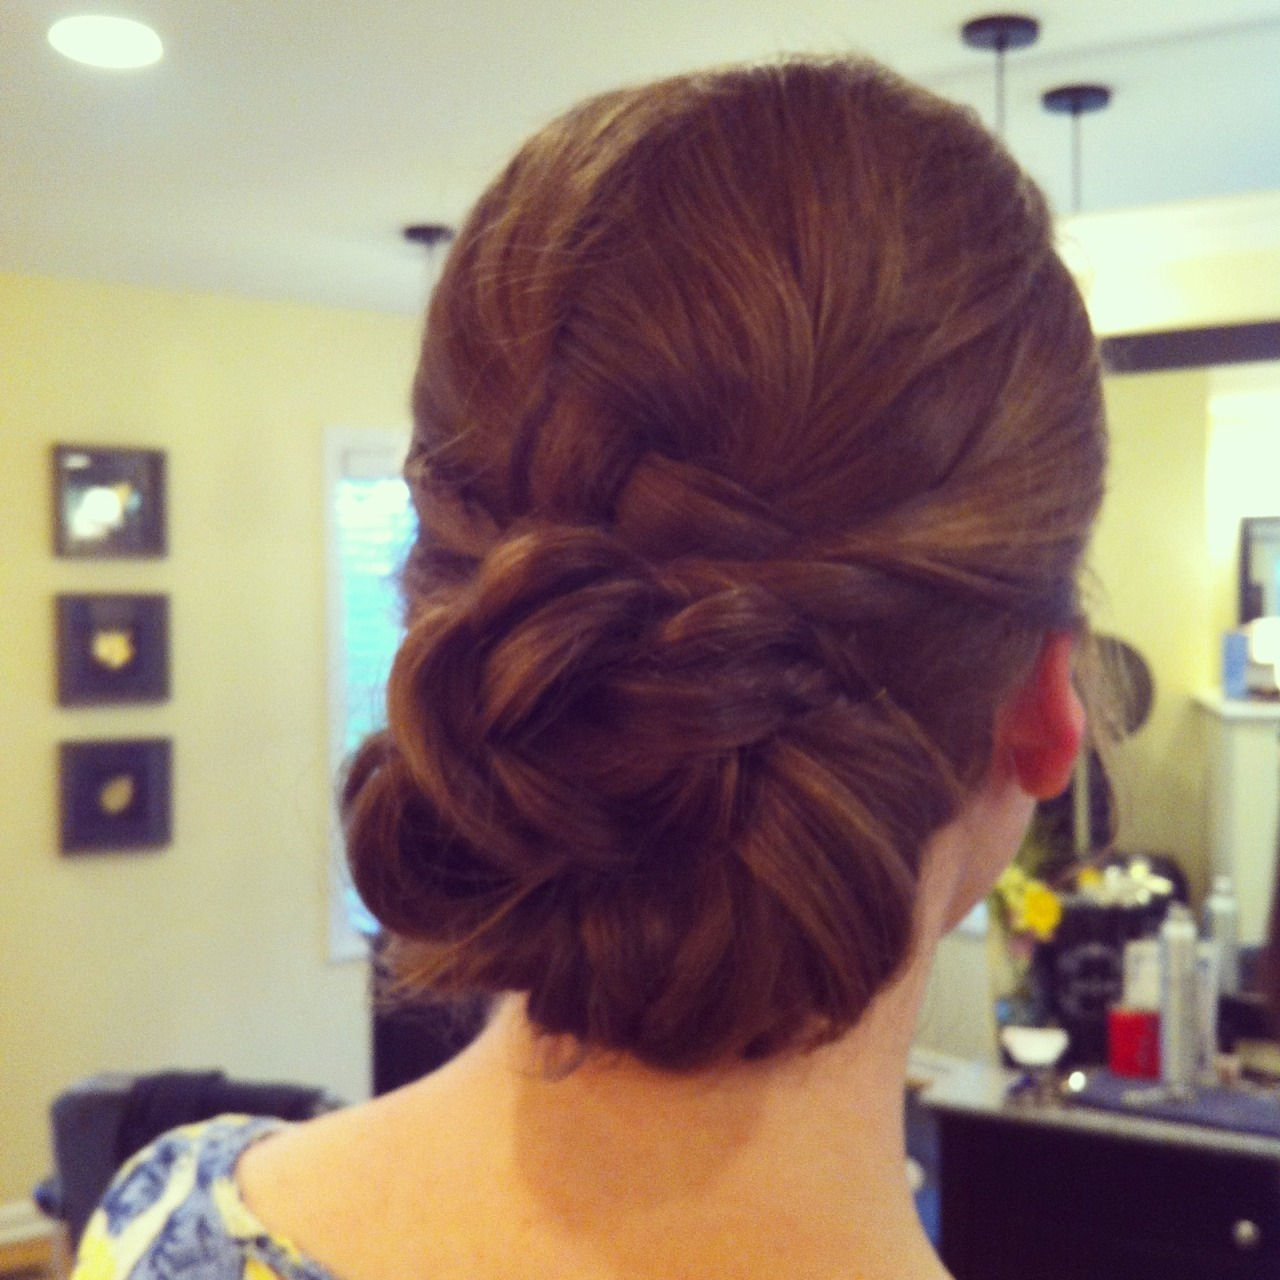 quitethequirkyone:  Prom hair! (Sorry for the prom spam)